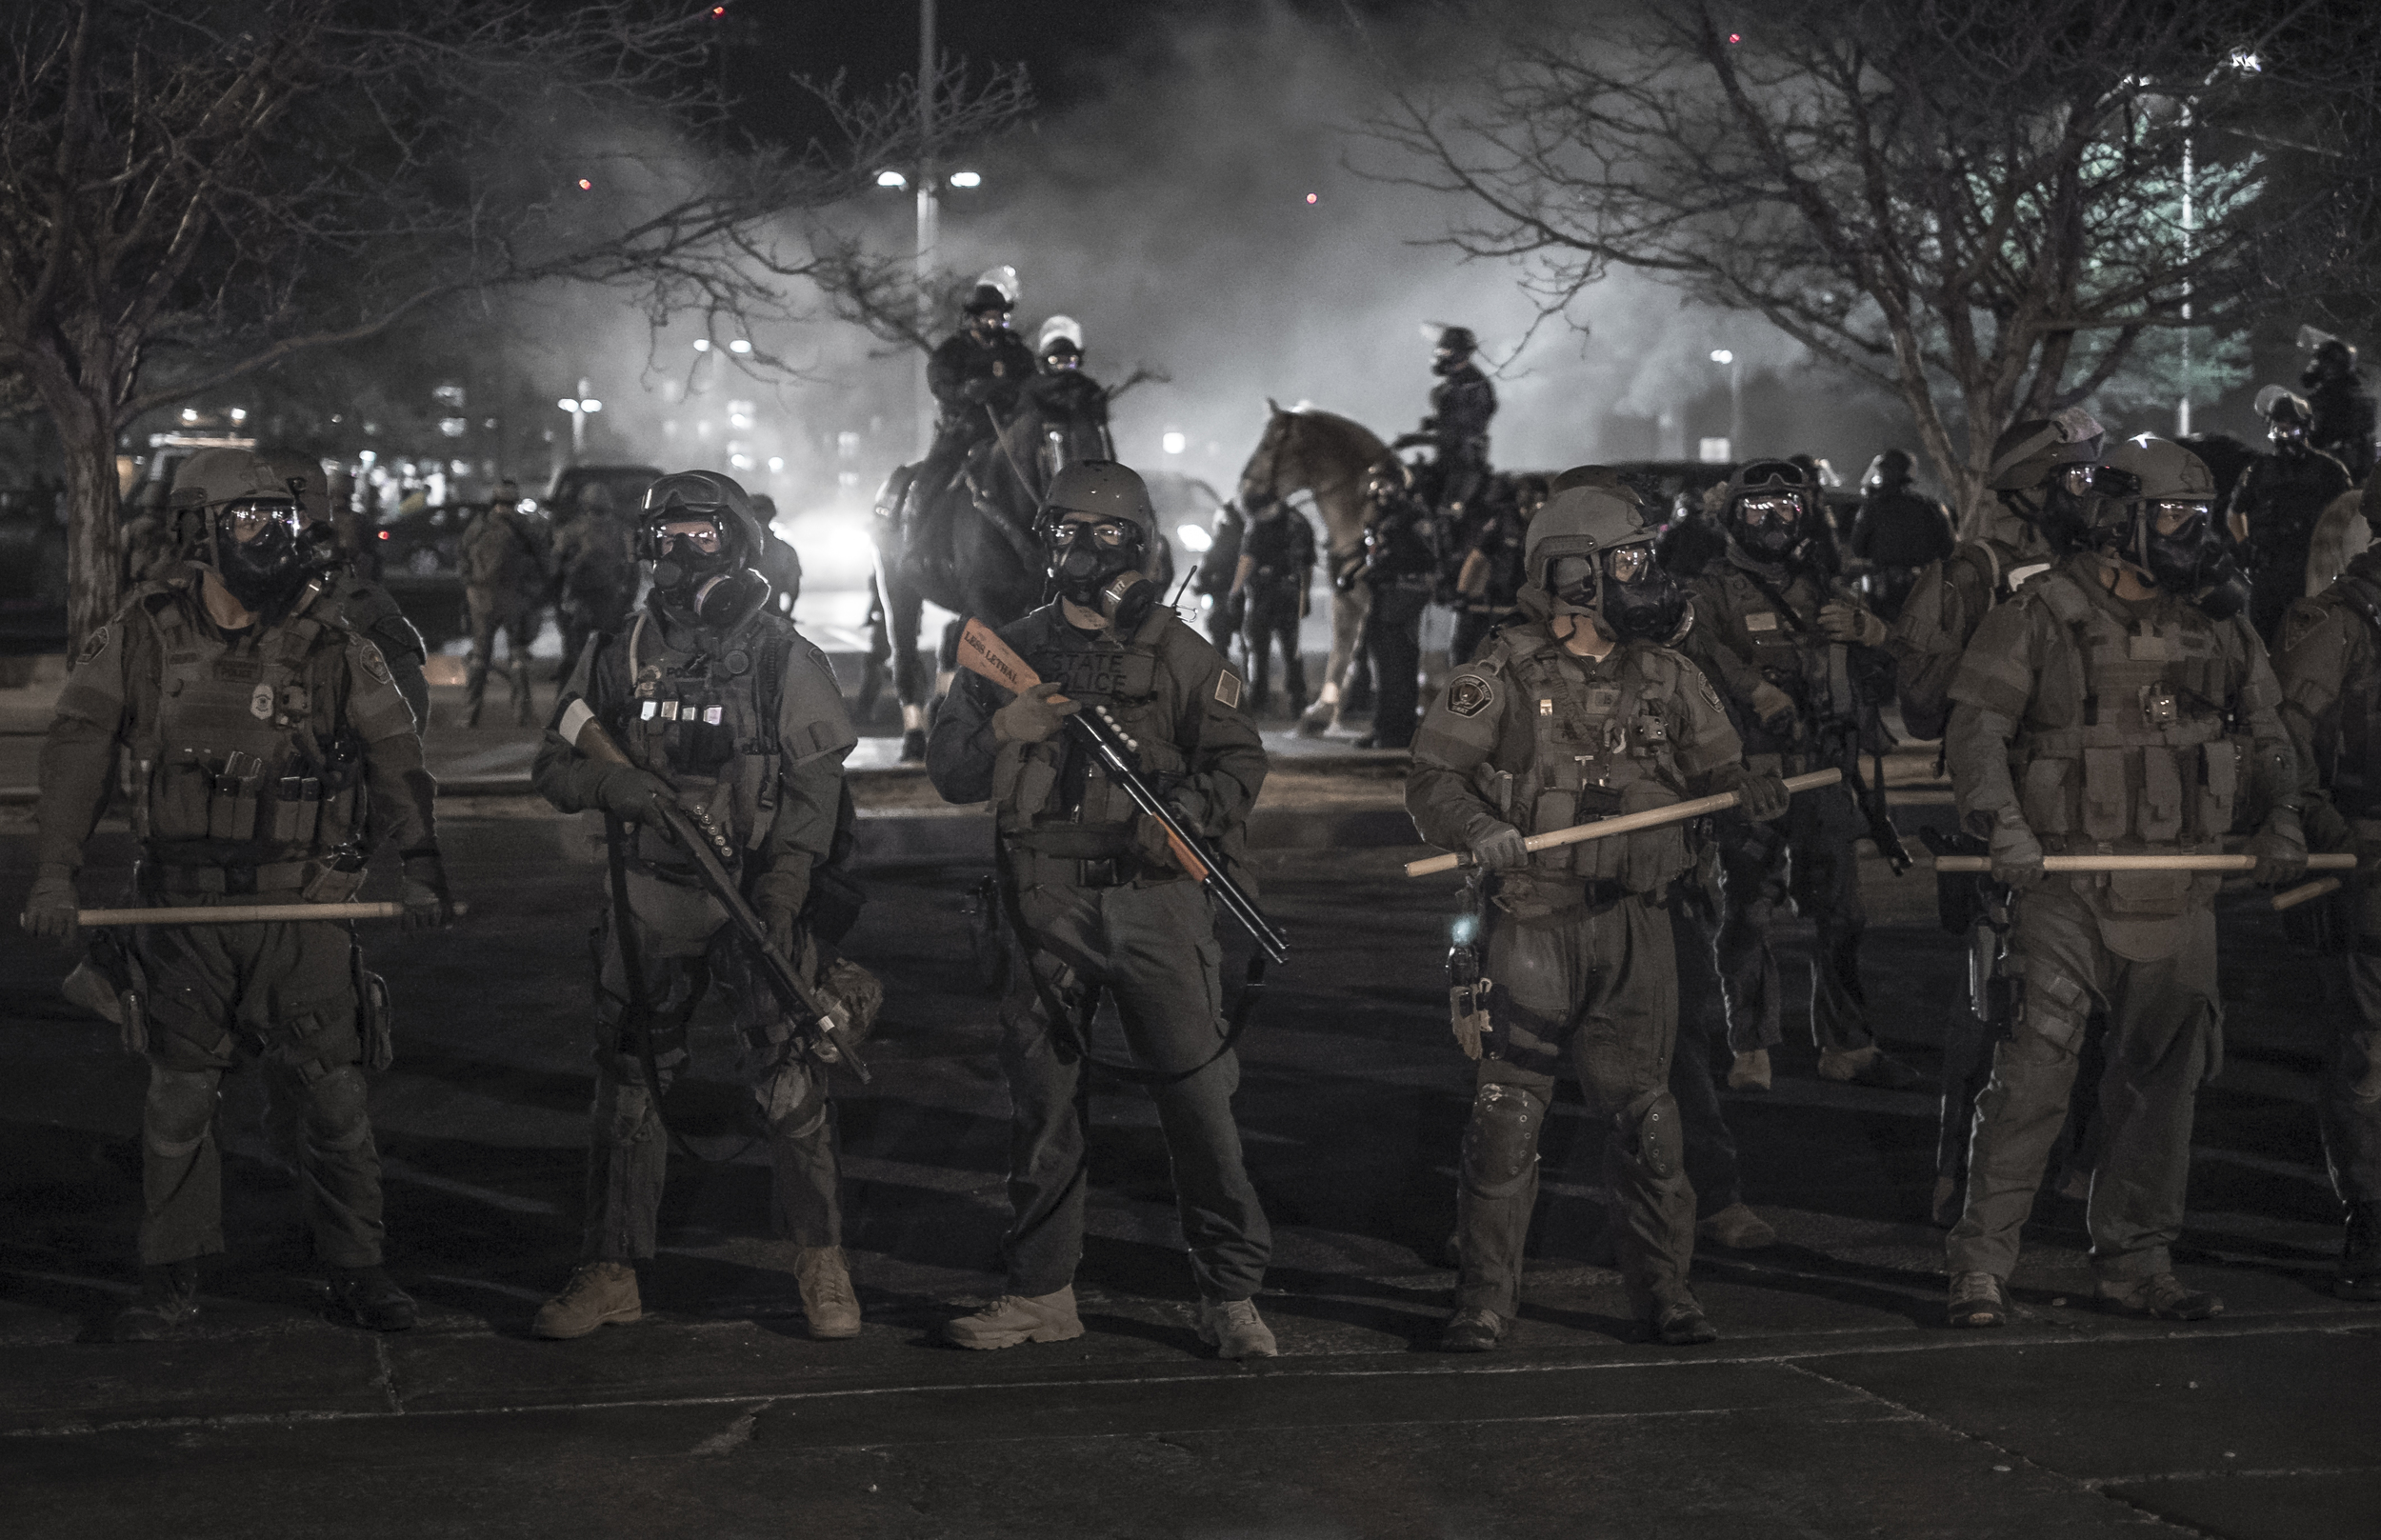 Albuquerque riot police force protesters off the streets on Central Avenue.